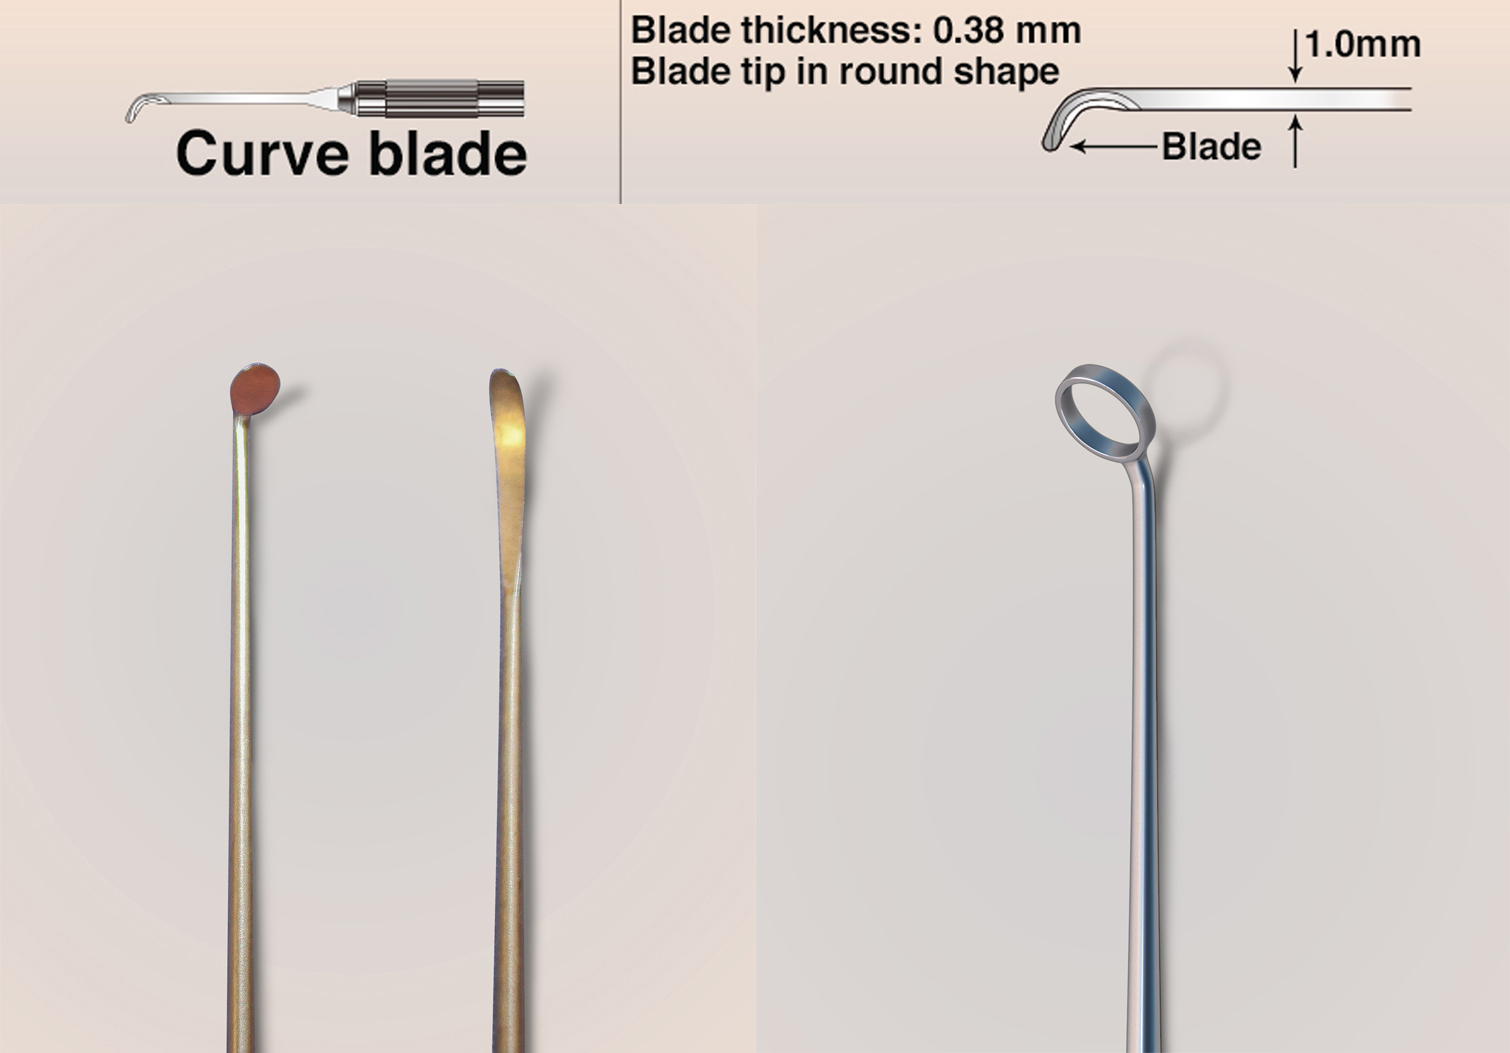 """Figure 4: Curved blades are especially effective for cutting """"toward"""" the surgeon and extending the dural incisions around the neurovascular structures (first row of images). The """"pancake"""" dissector and curved dissector (bottom row, left) and 45-degree ring curettes (bottom row, right) are my favorite dissecting instruments for endonasal microsurgical skull base surgery. Their appropriately angled tips allow adequate visualization and easy maneuverability."""